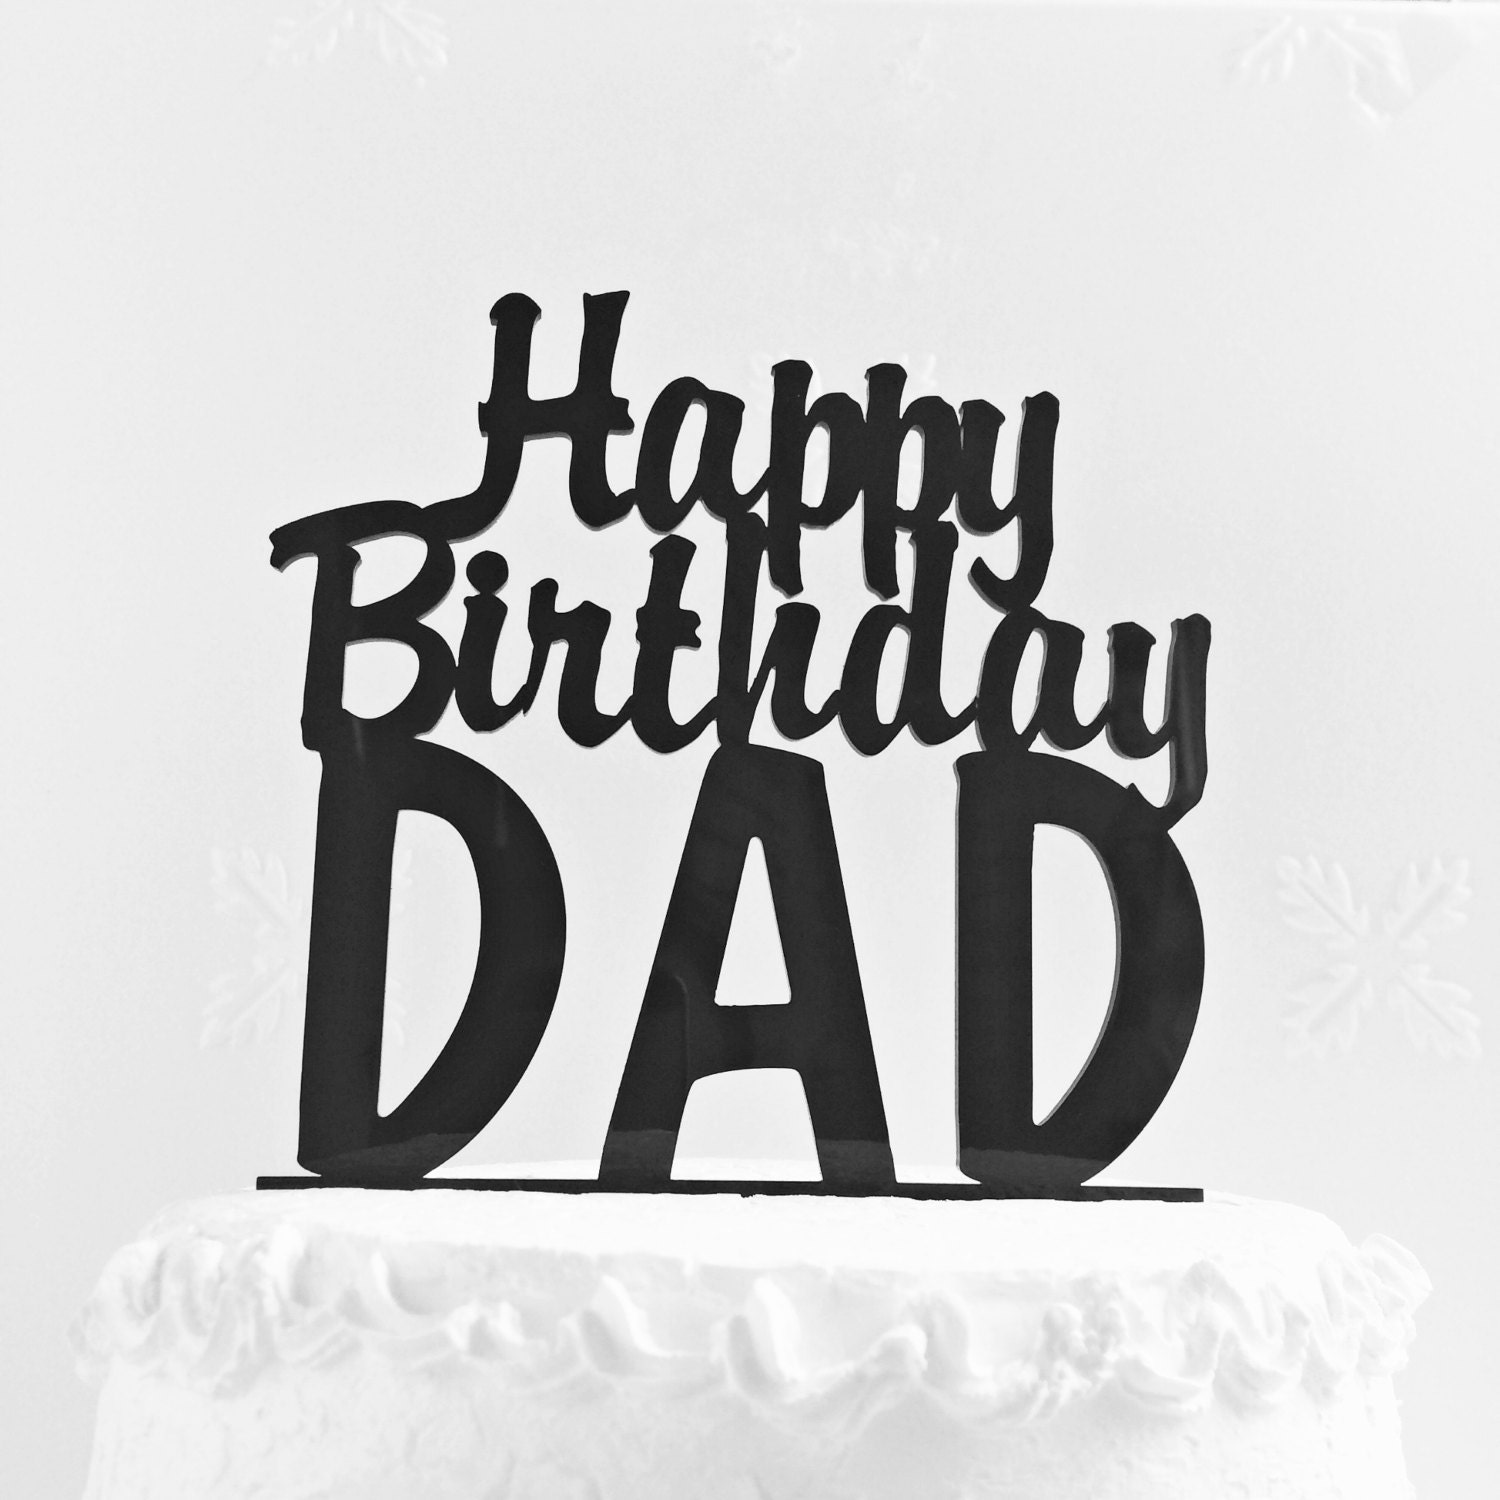 Happy Birthday Dad Cake Topper Father's Day Cake Topper